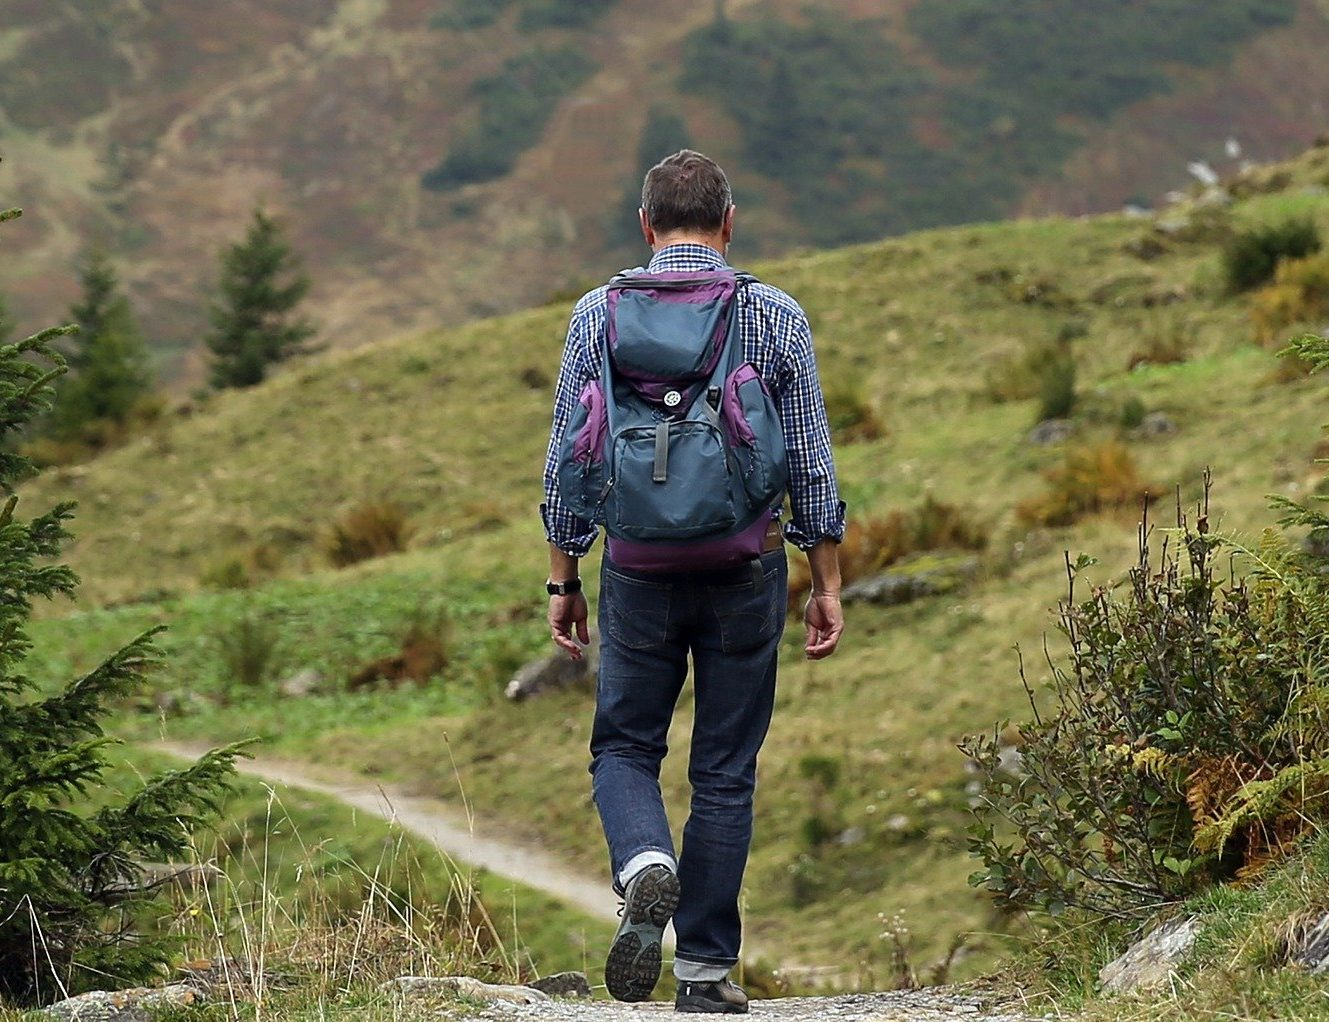 How long does it take to hike a mile